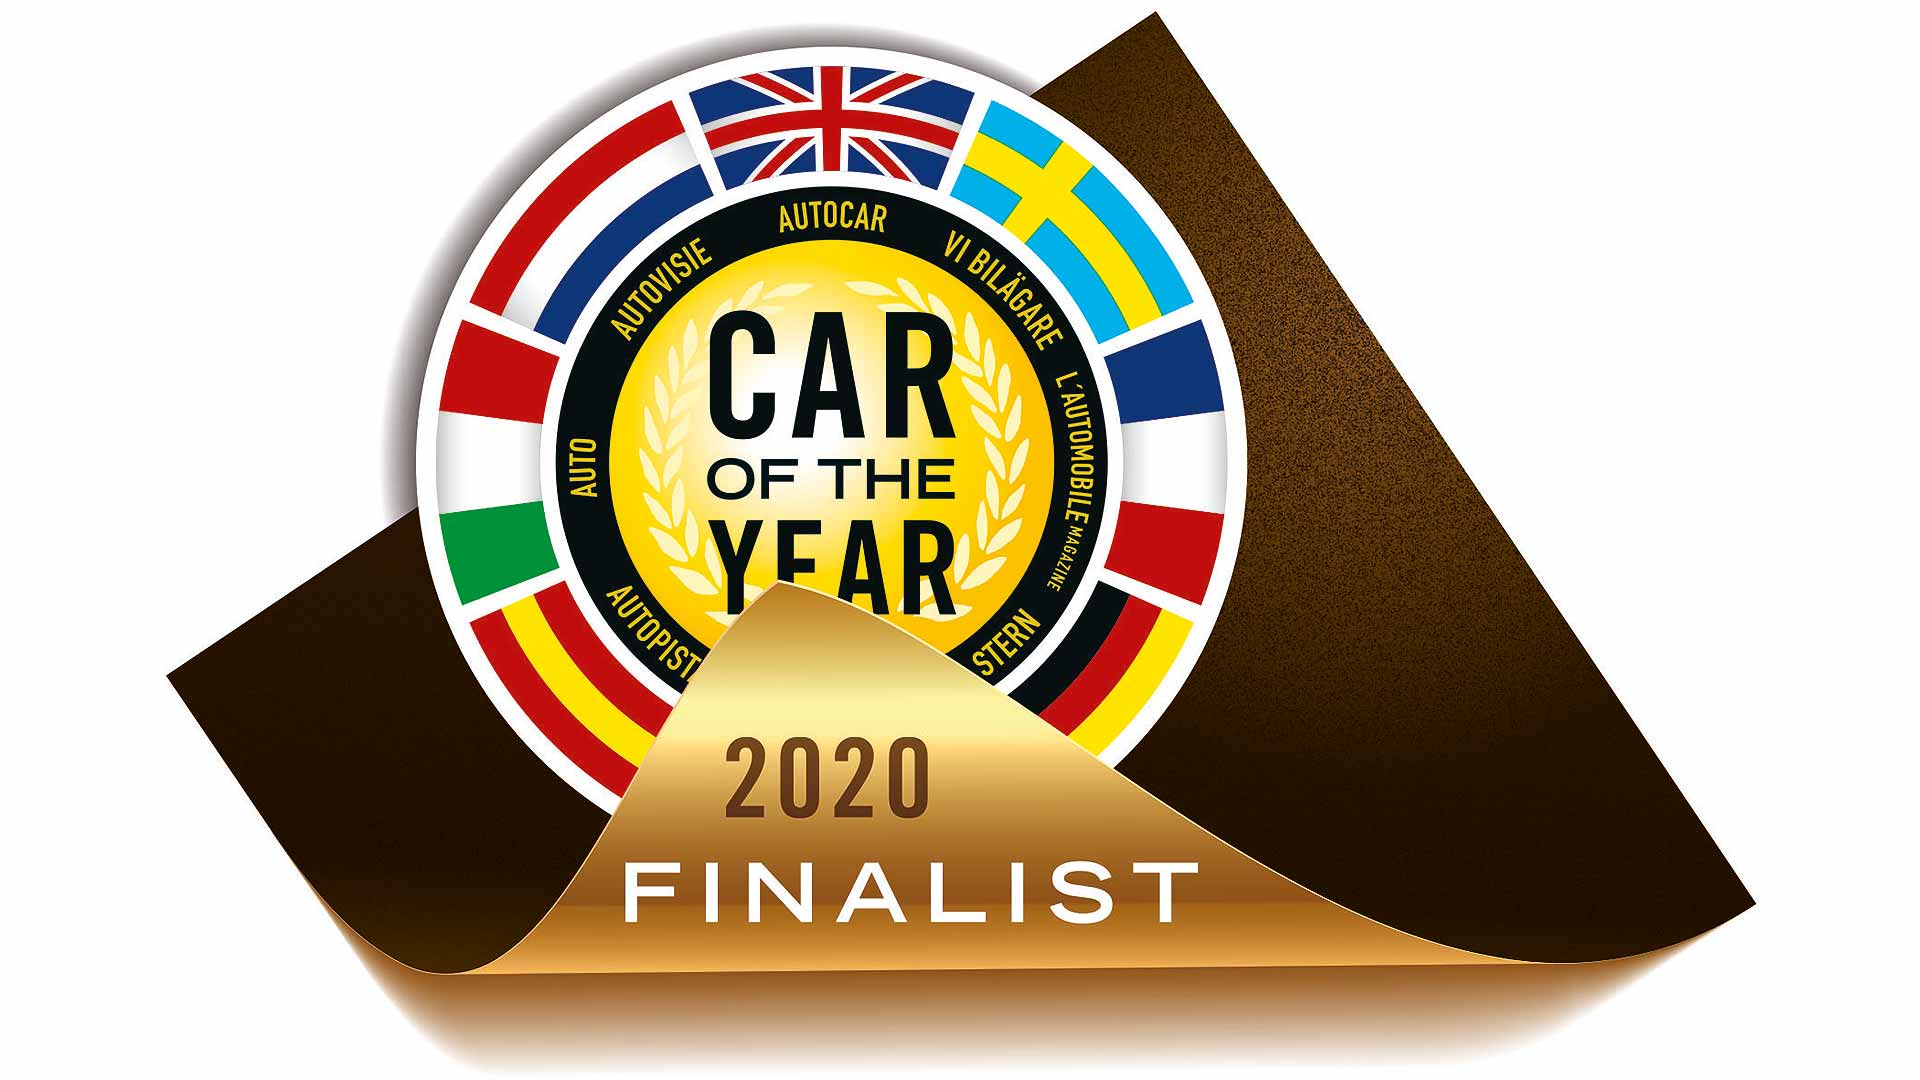 Car of the Year 2020 logo